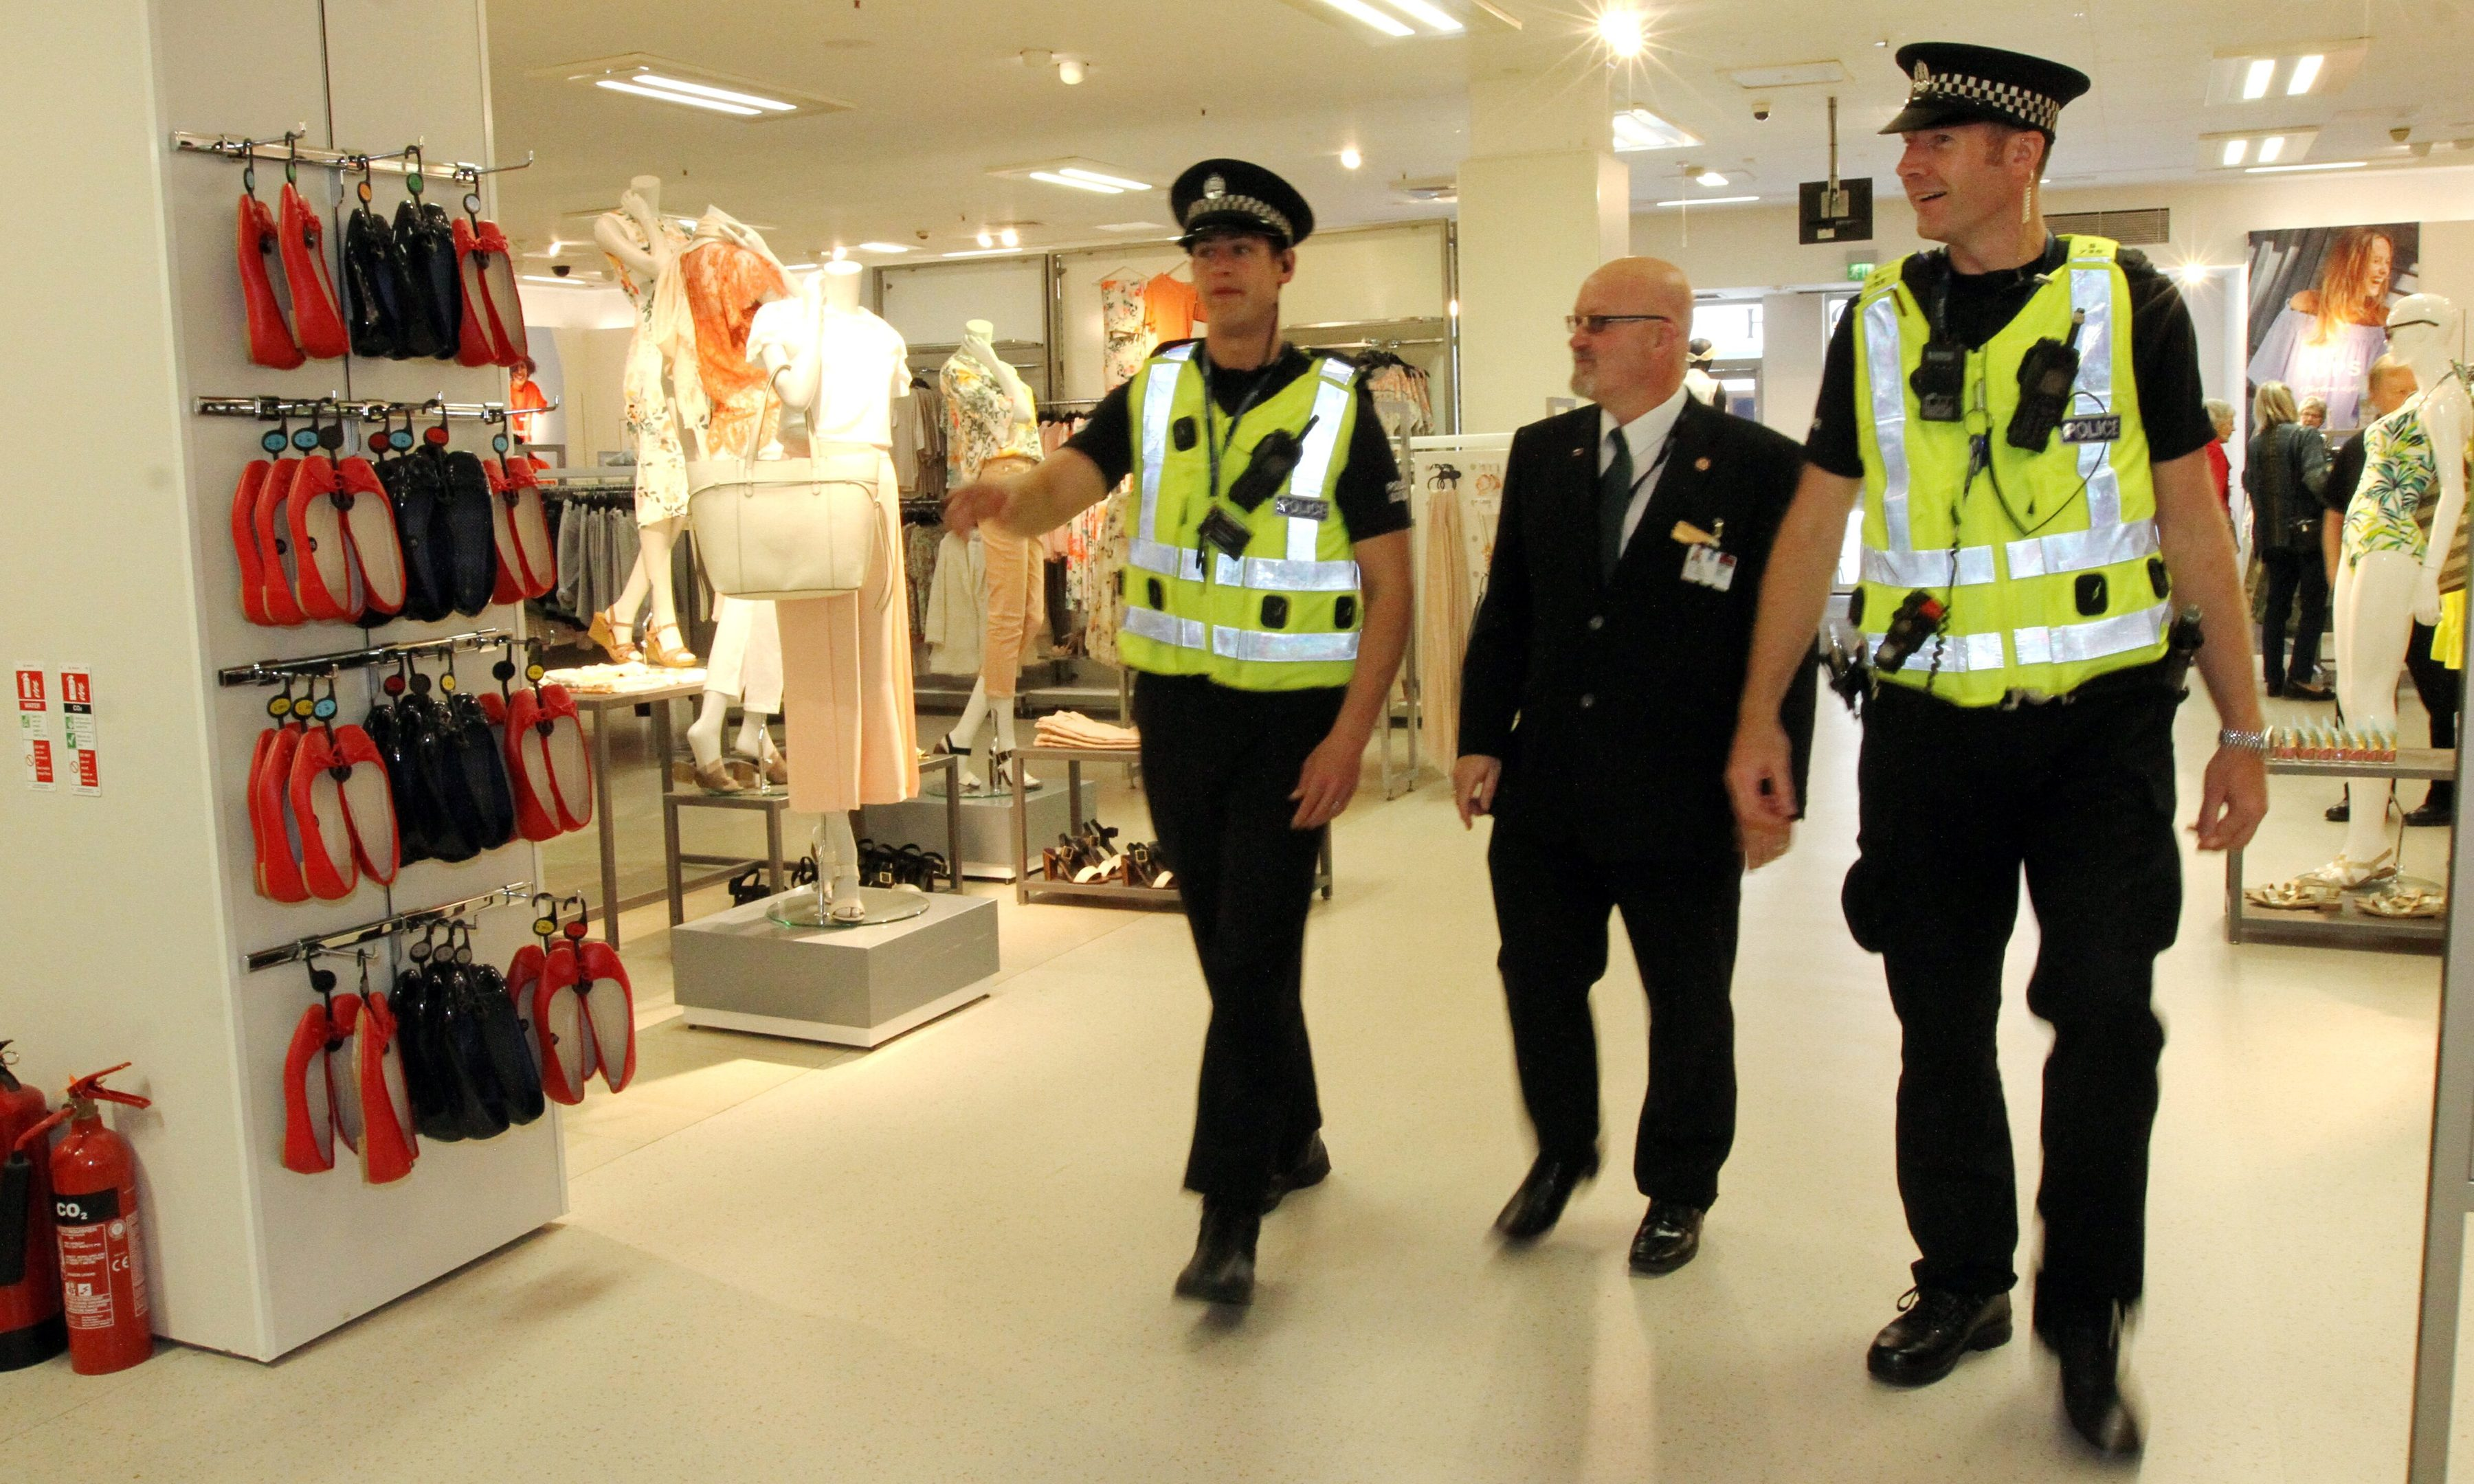 PC Peter Duncan,Paul Nisbett ( M&;S security) and PC Graeme Kerr, take a walk round the Marks & Spencer store, Perth.